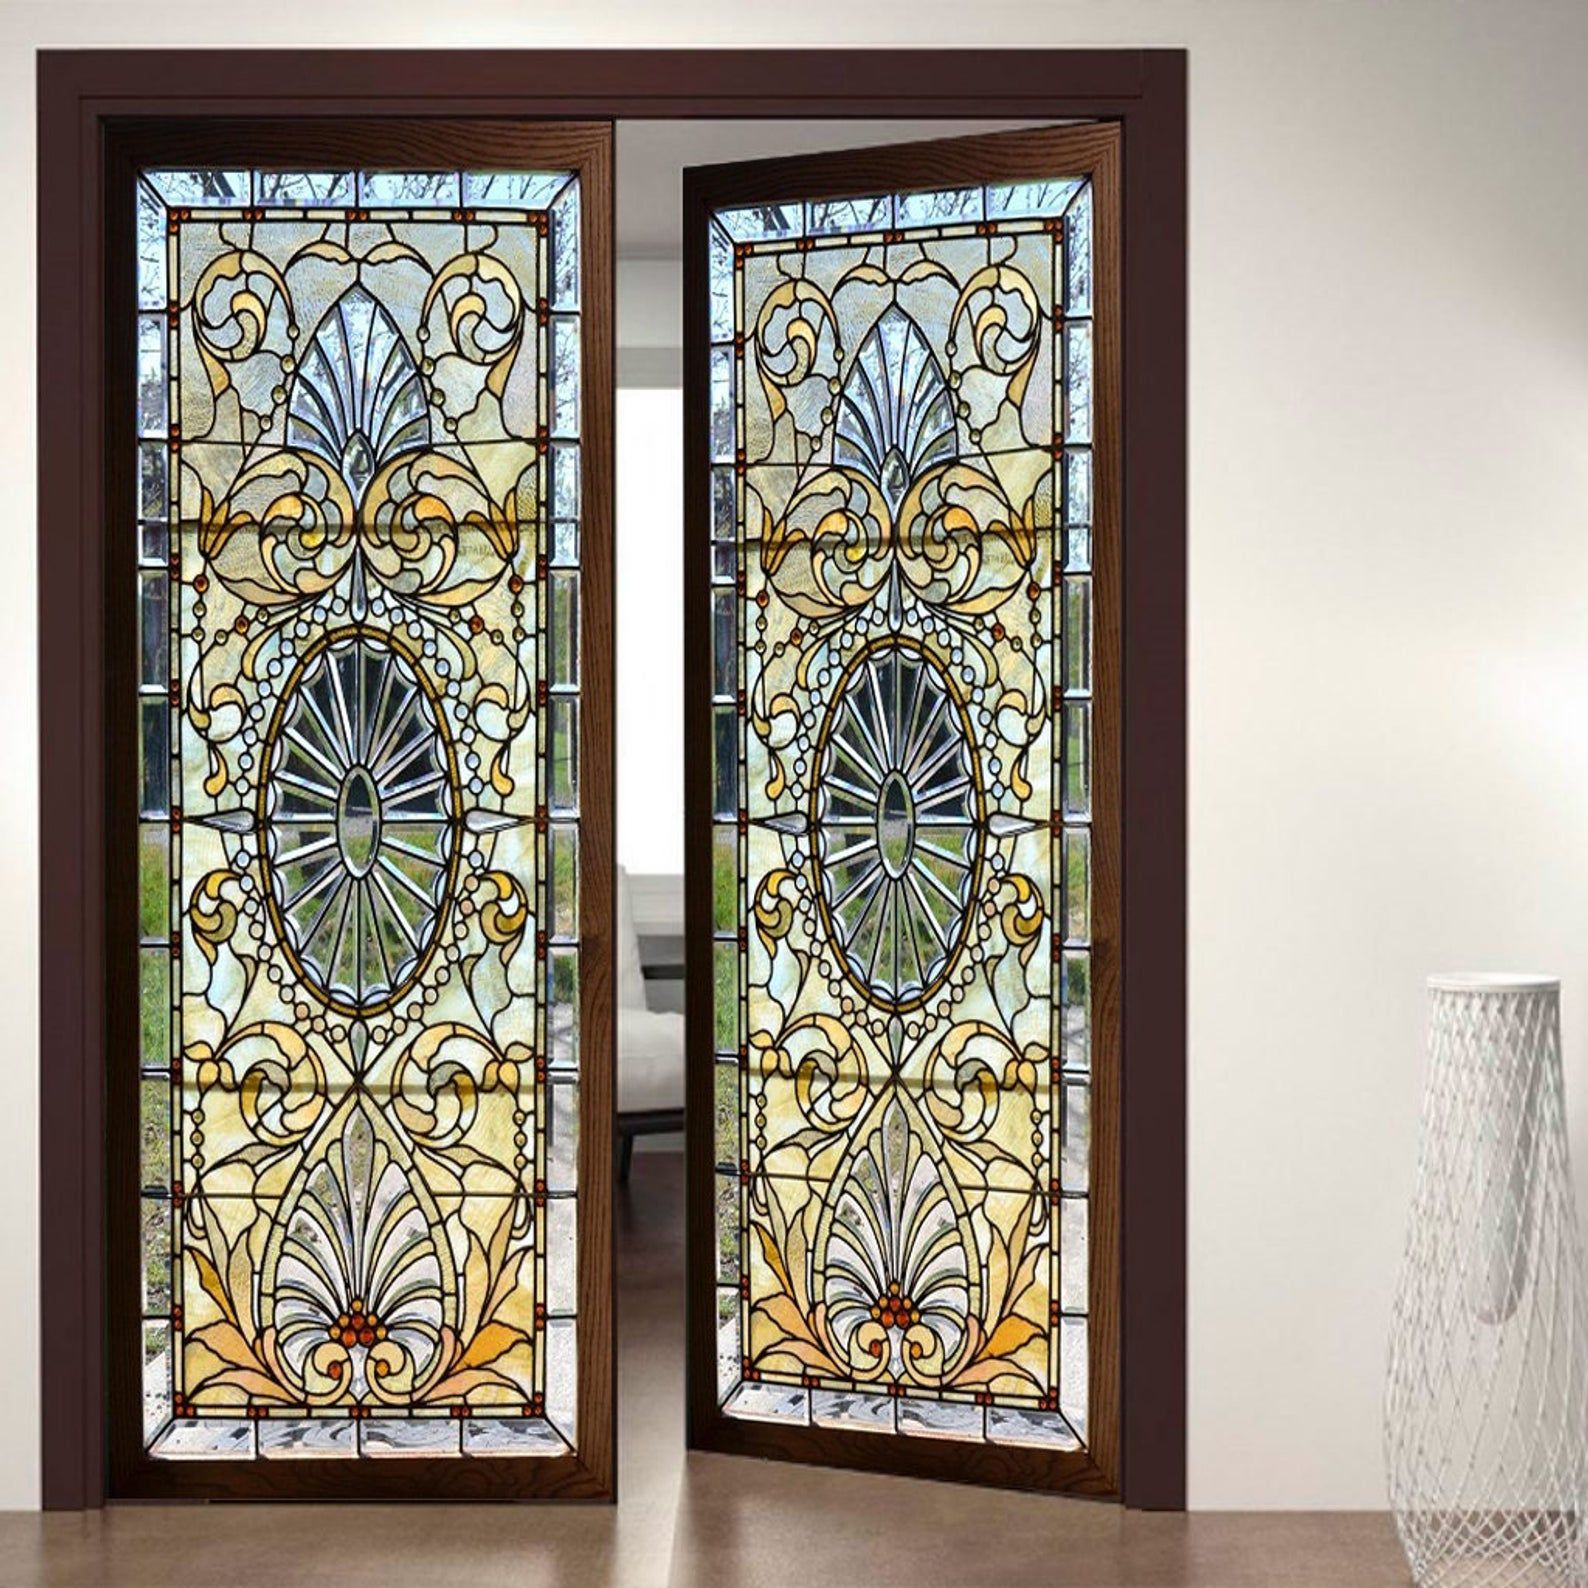 Door Wall Sticker Stained Glass With Bevels Self Adhesive Vinyl Decal Poster Mural Self Adhesive Wallpaper In 2021 Stained Glass Door Door Stickers Vinyl Doors